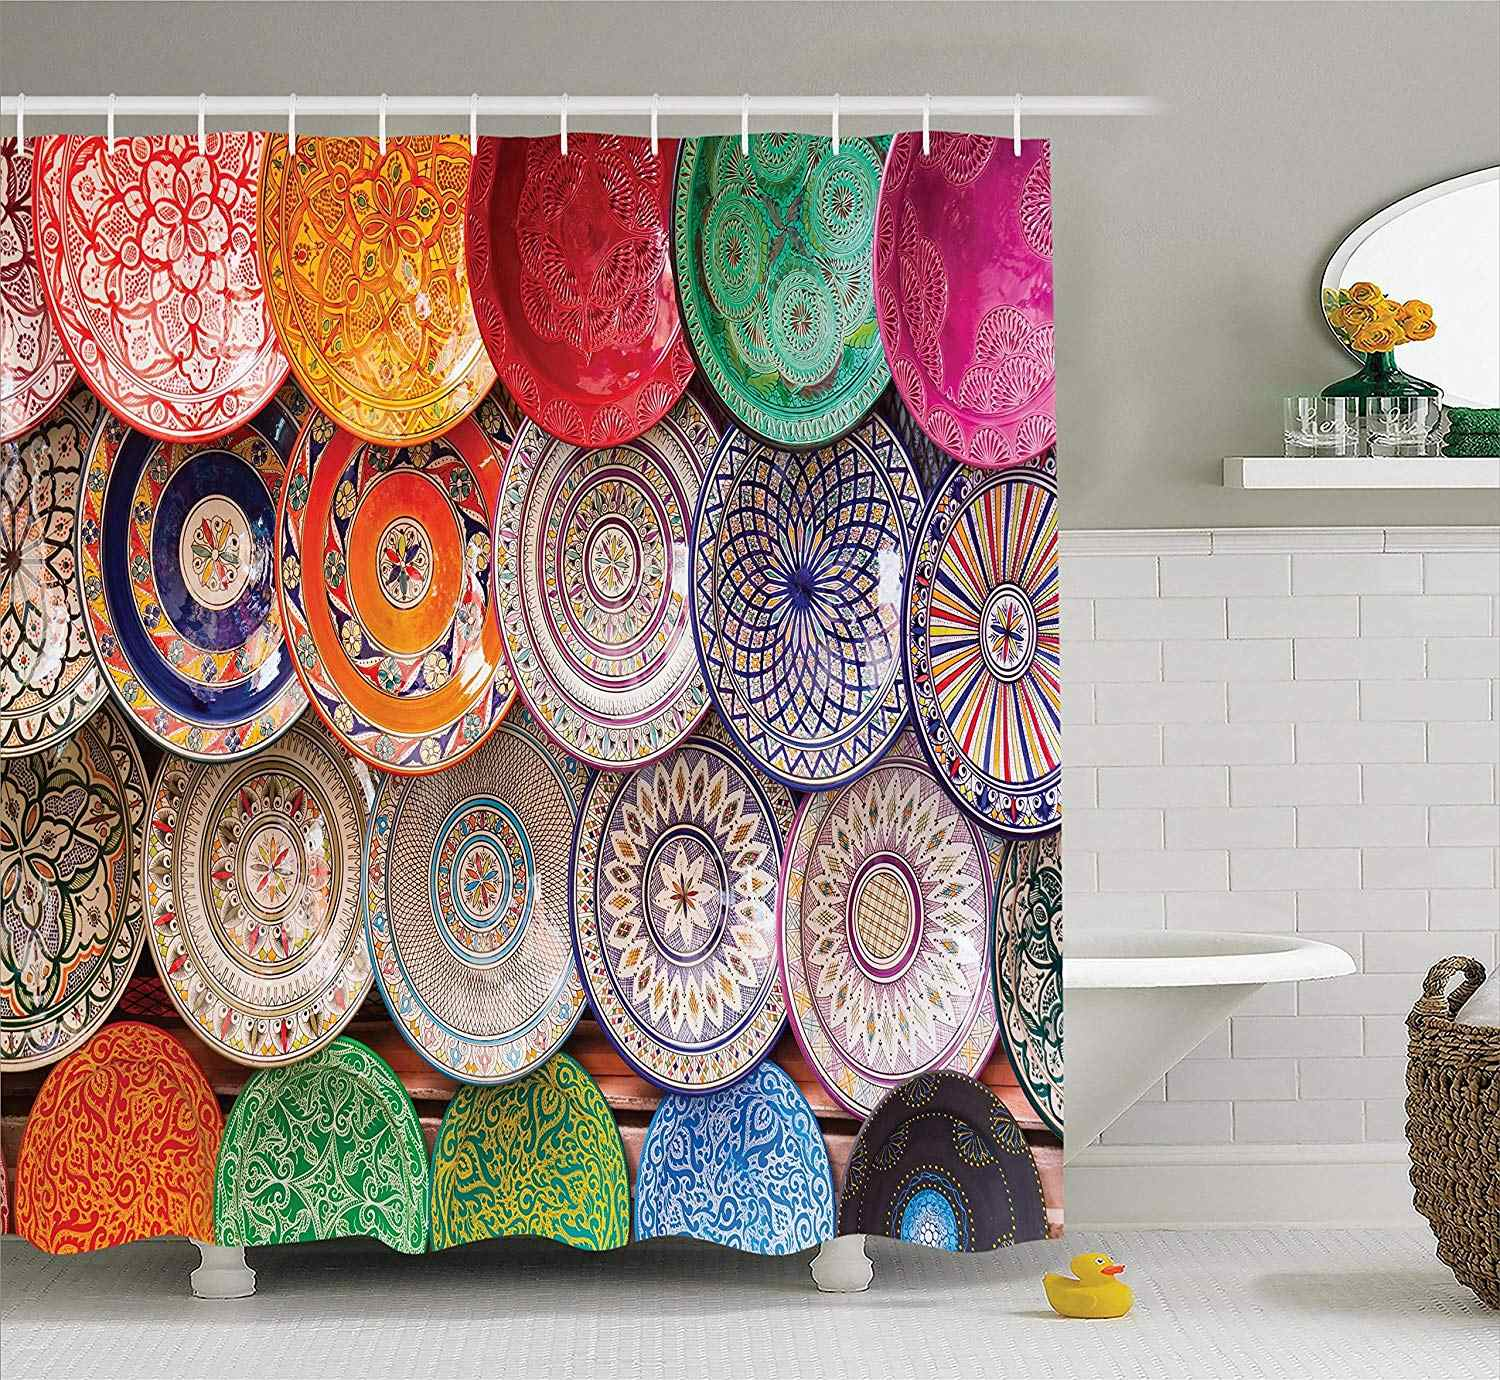 Moroccan Shower Curtain Traditional Arabic Handcrafted Colorful Plates Shot At The Market in Marrakesh Bathroom Accessories